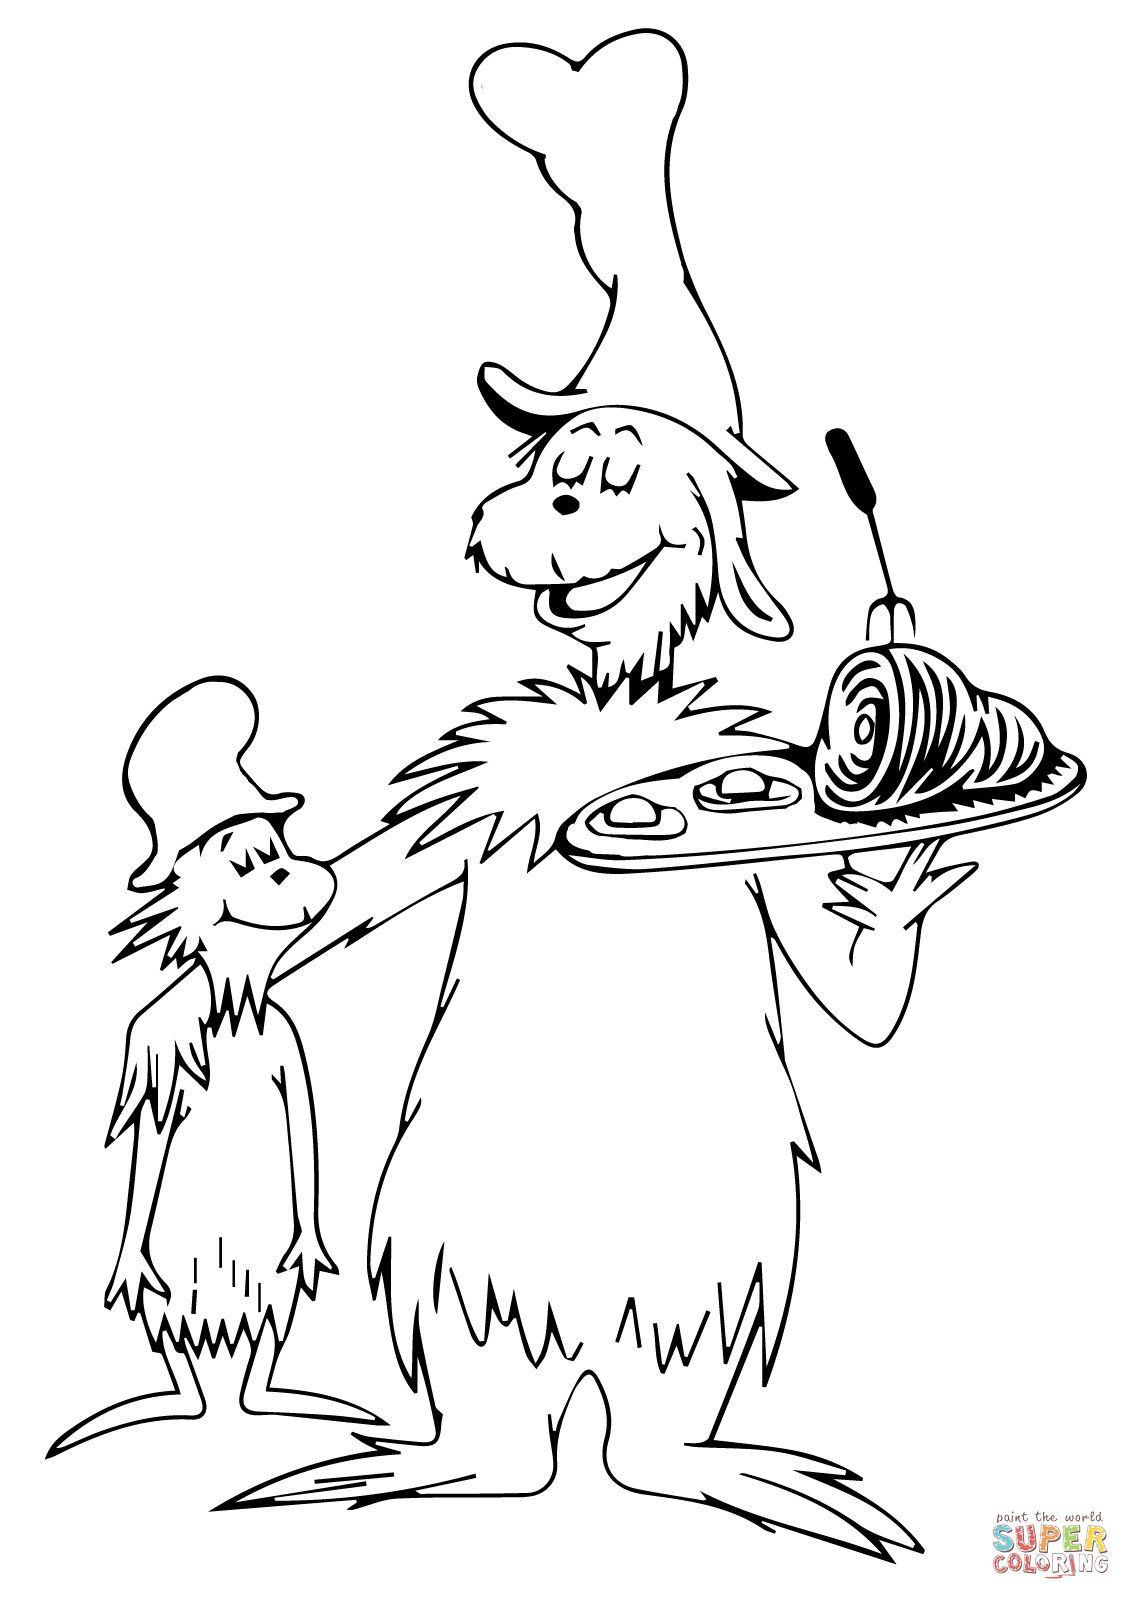 Green eggs and ham coloring page young womens Pinterest